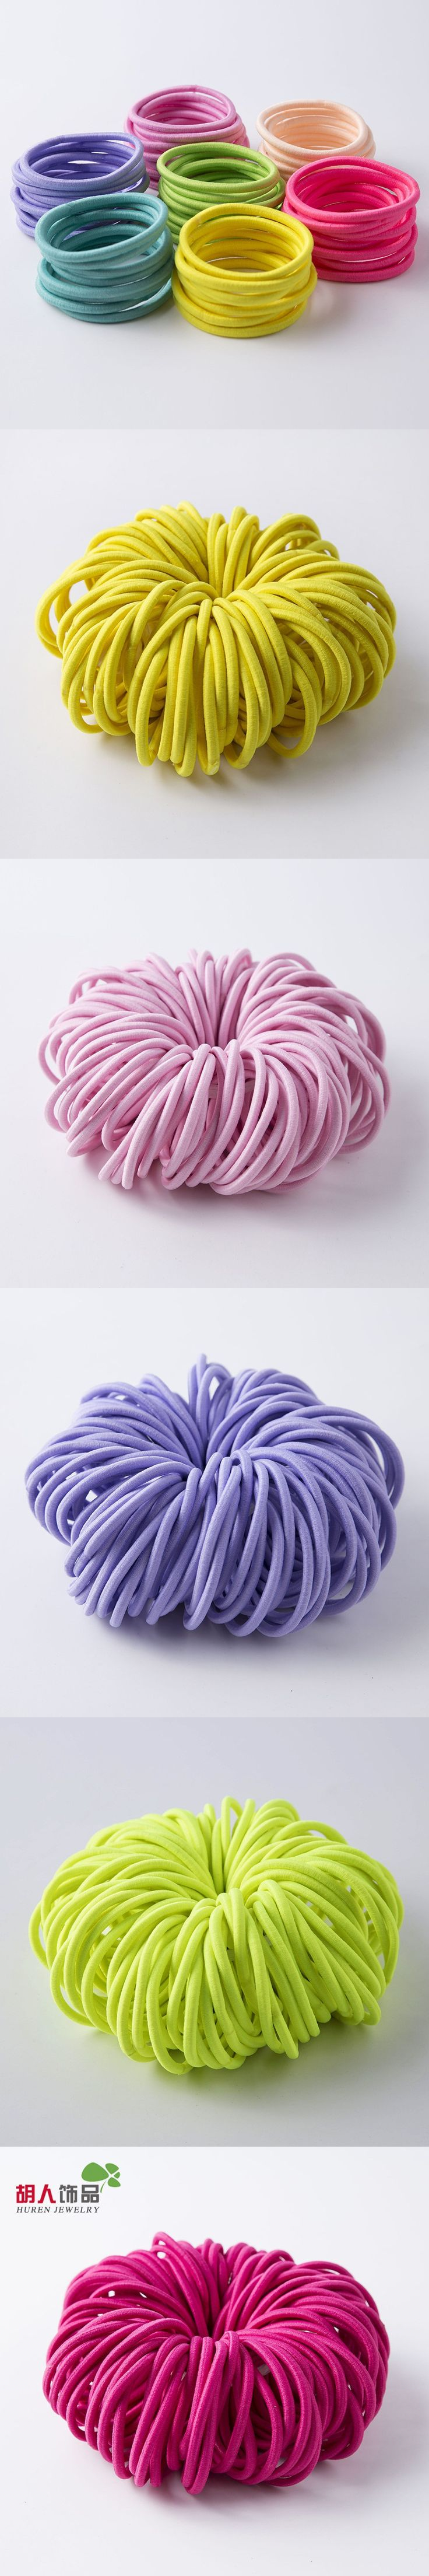 100Pcs Candy Color Baby Headband Hair Ropes Ponytail Holders 4mm Thick Rubber Elastic Hair Band Hair Accessories for Girls $8.99